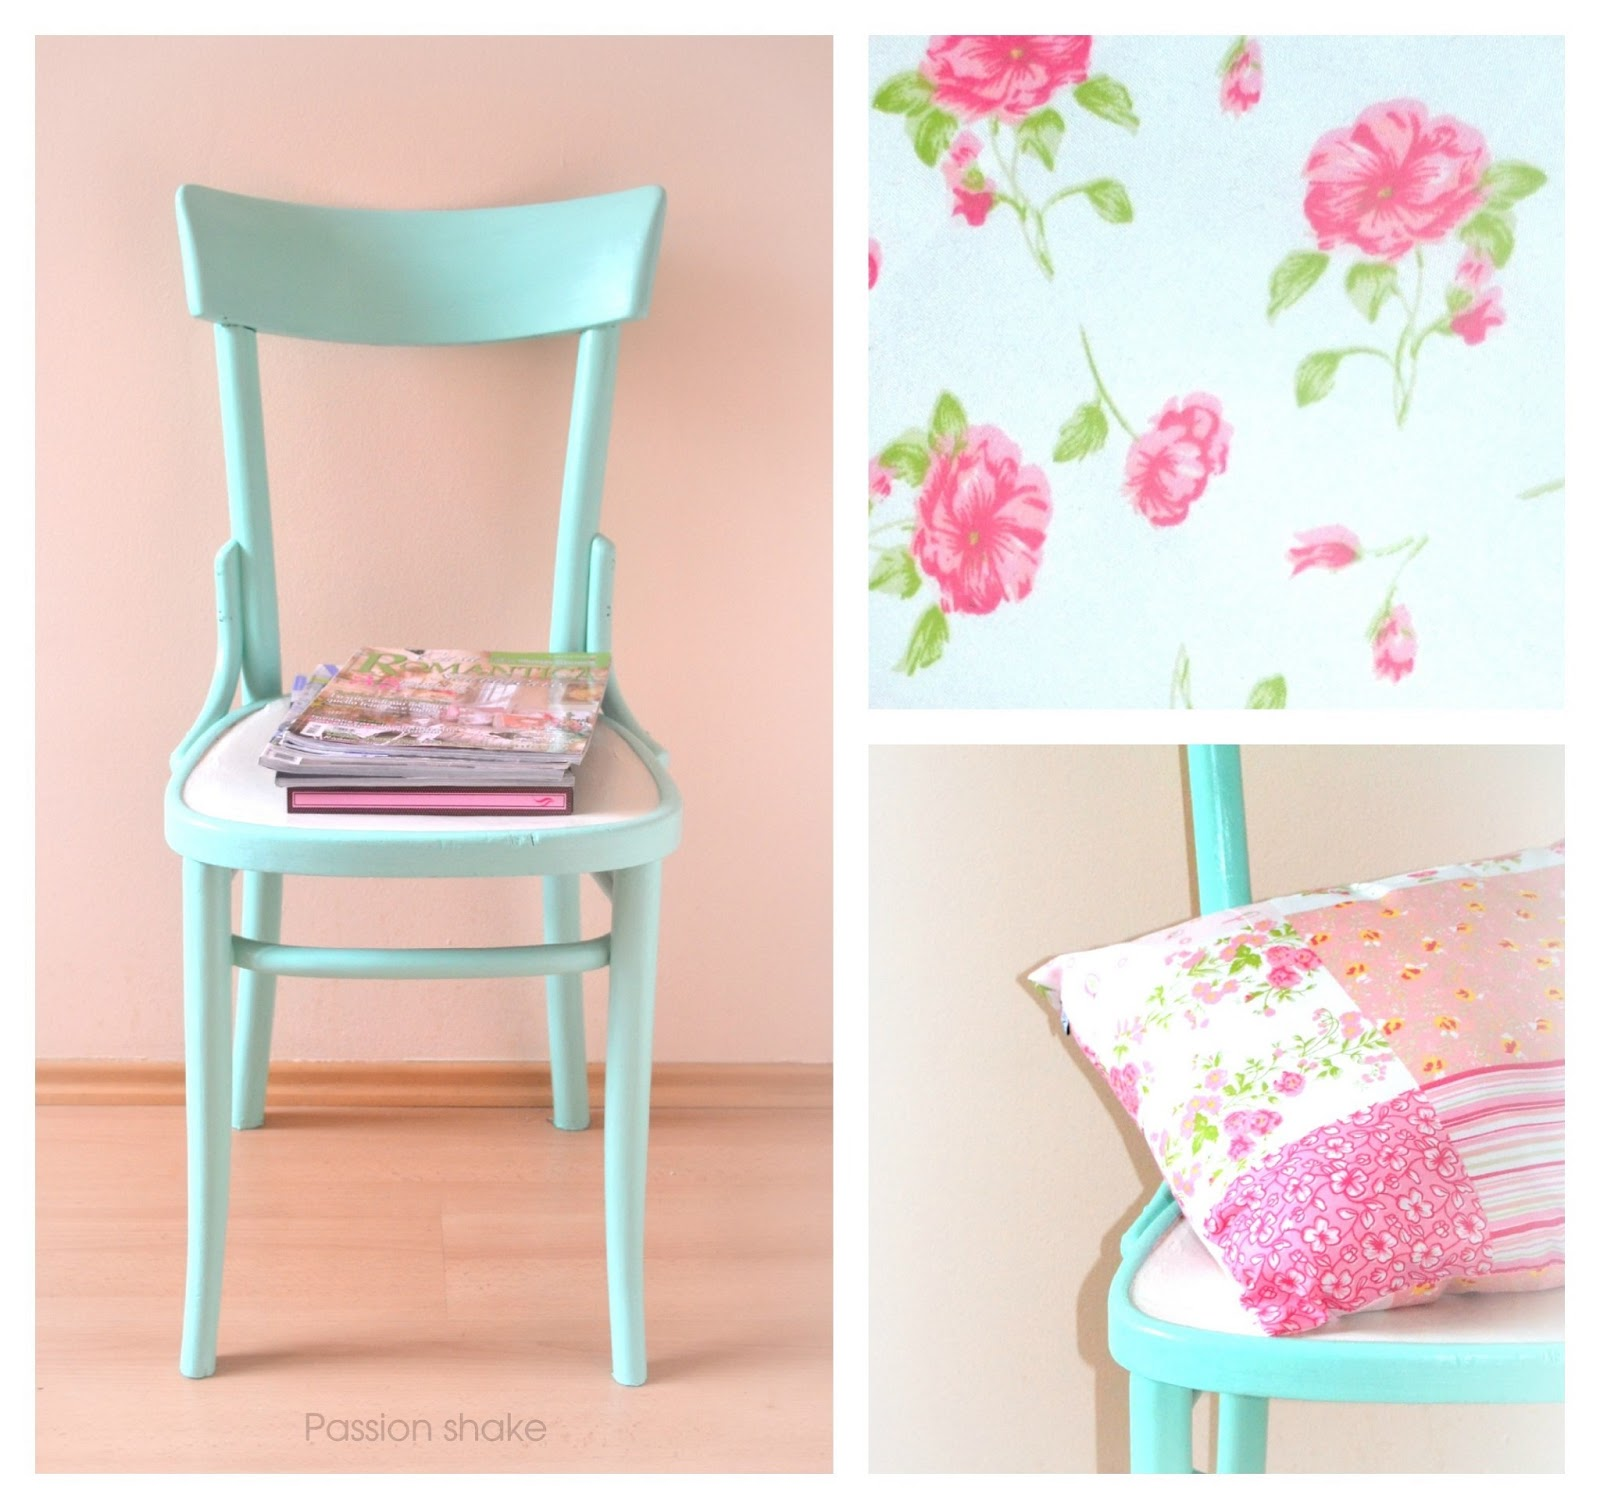 Very Impressive portraiture of Passion shake : DIY painted pastel wooden chair with #AE1D55 color and 1600x1509 pixels